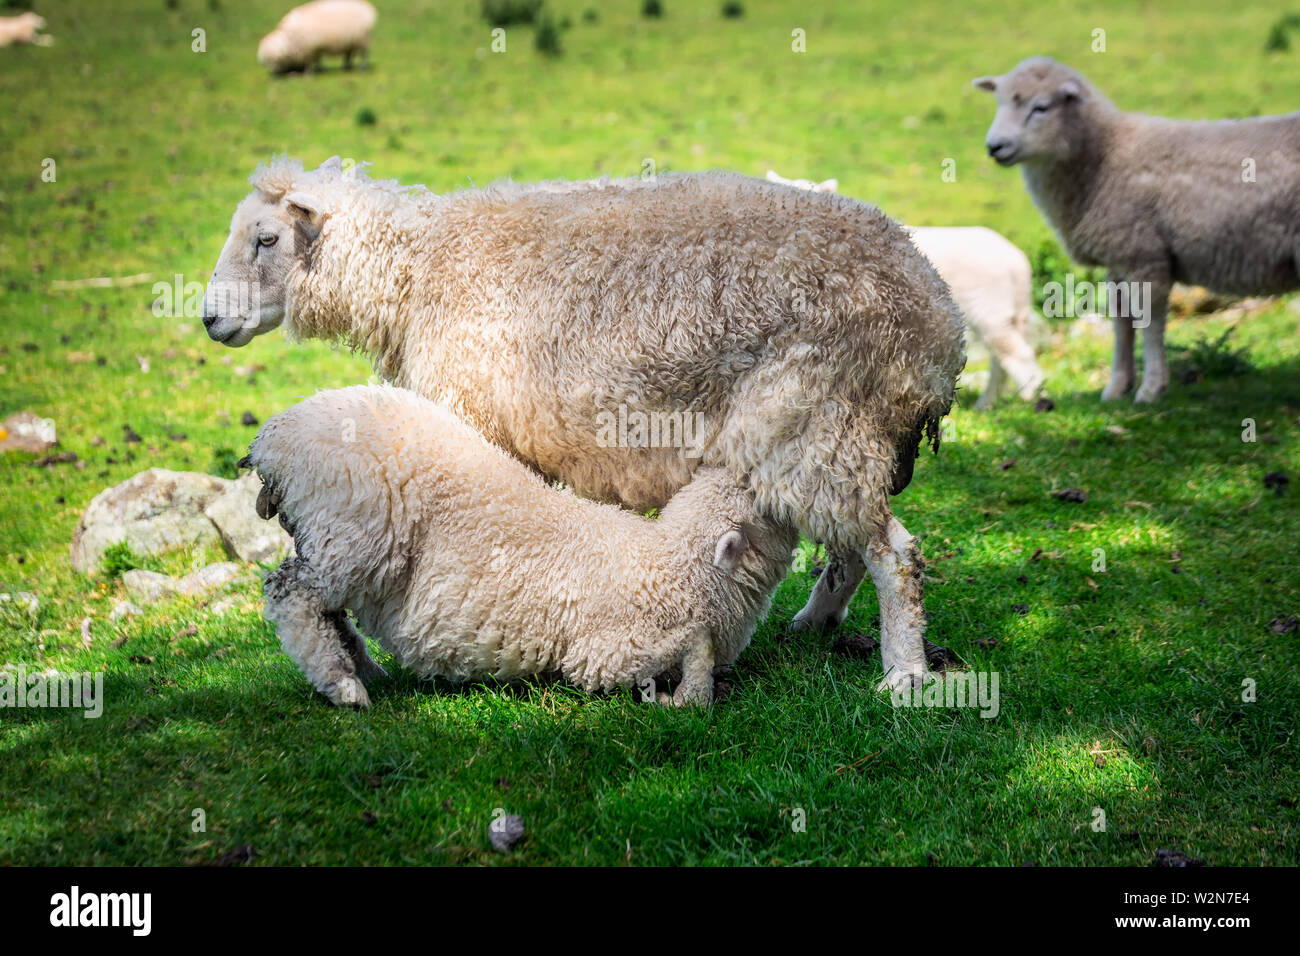 Sheep drinking milk in a green meadow near Dunedin Southern Scenic Route, New Zealand. - Stock Image